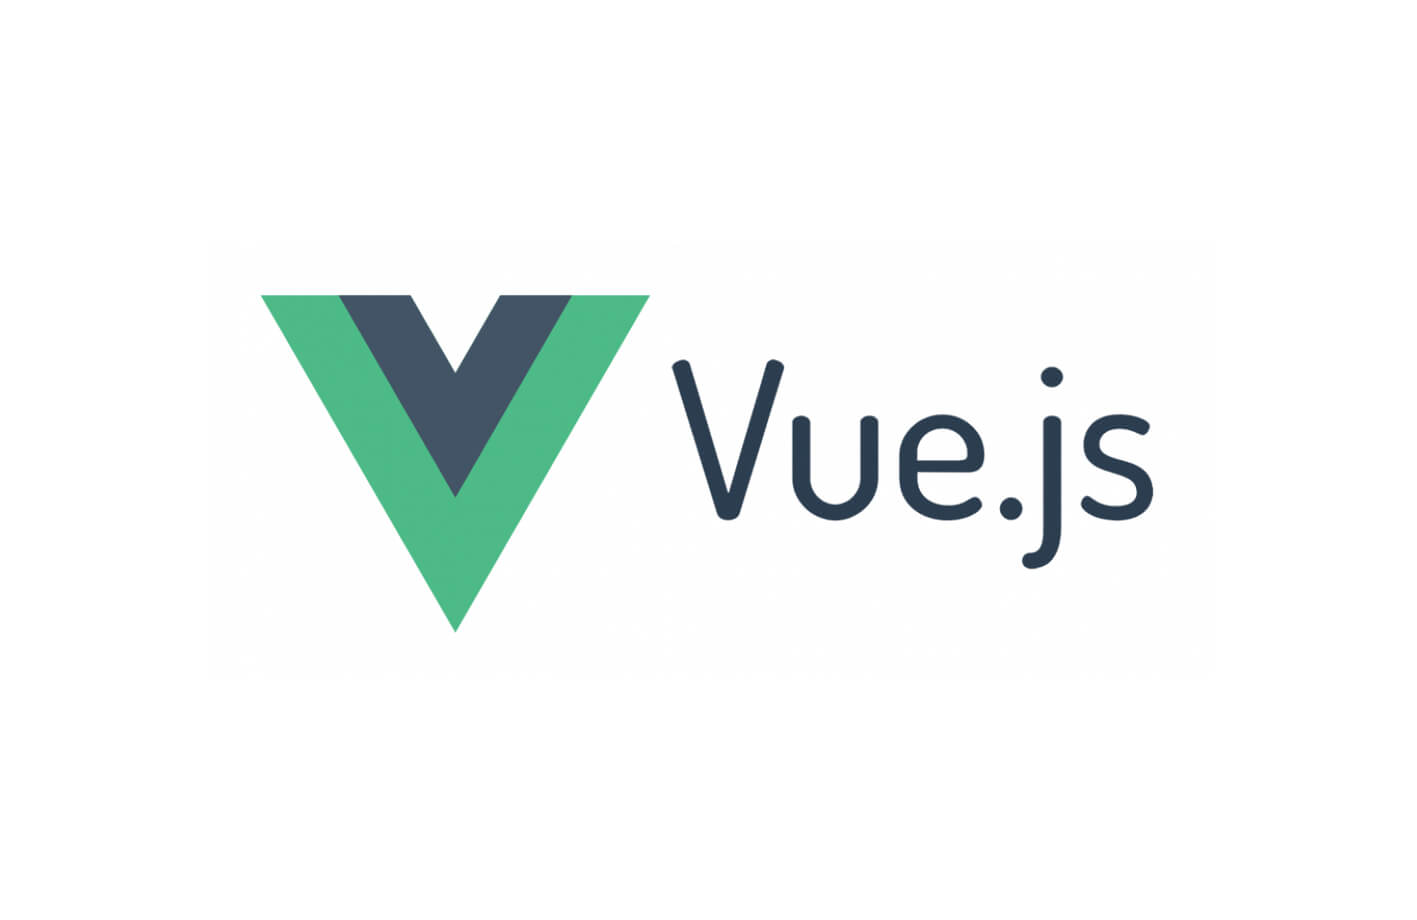 Vue Js Front-end Development Services